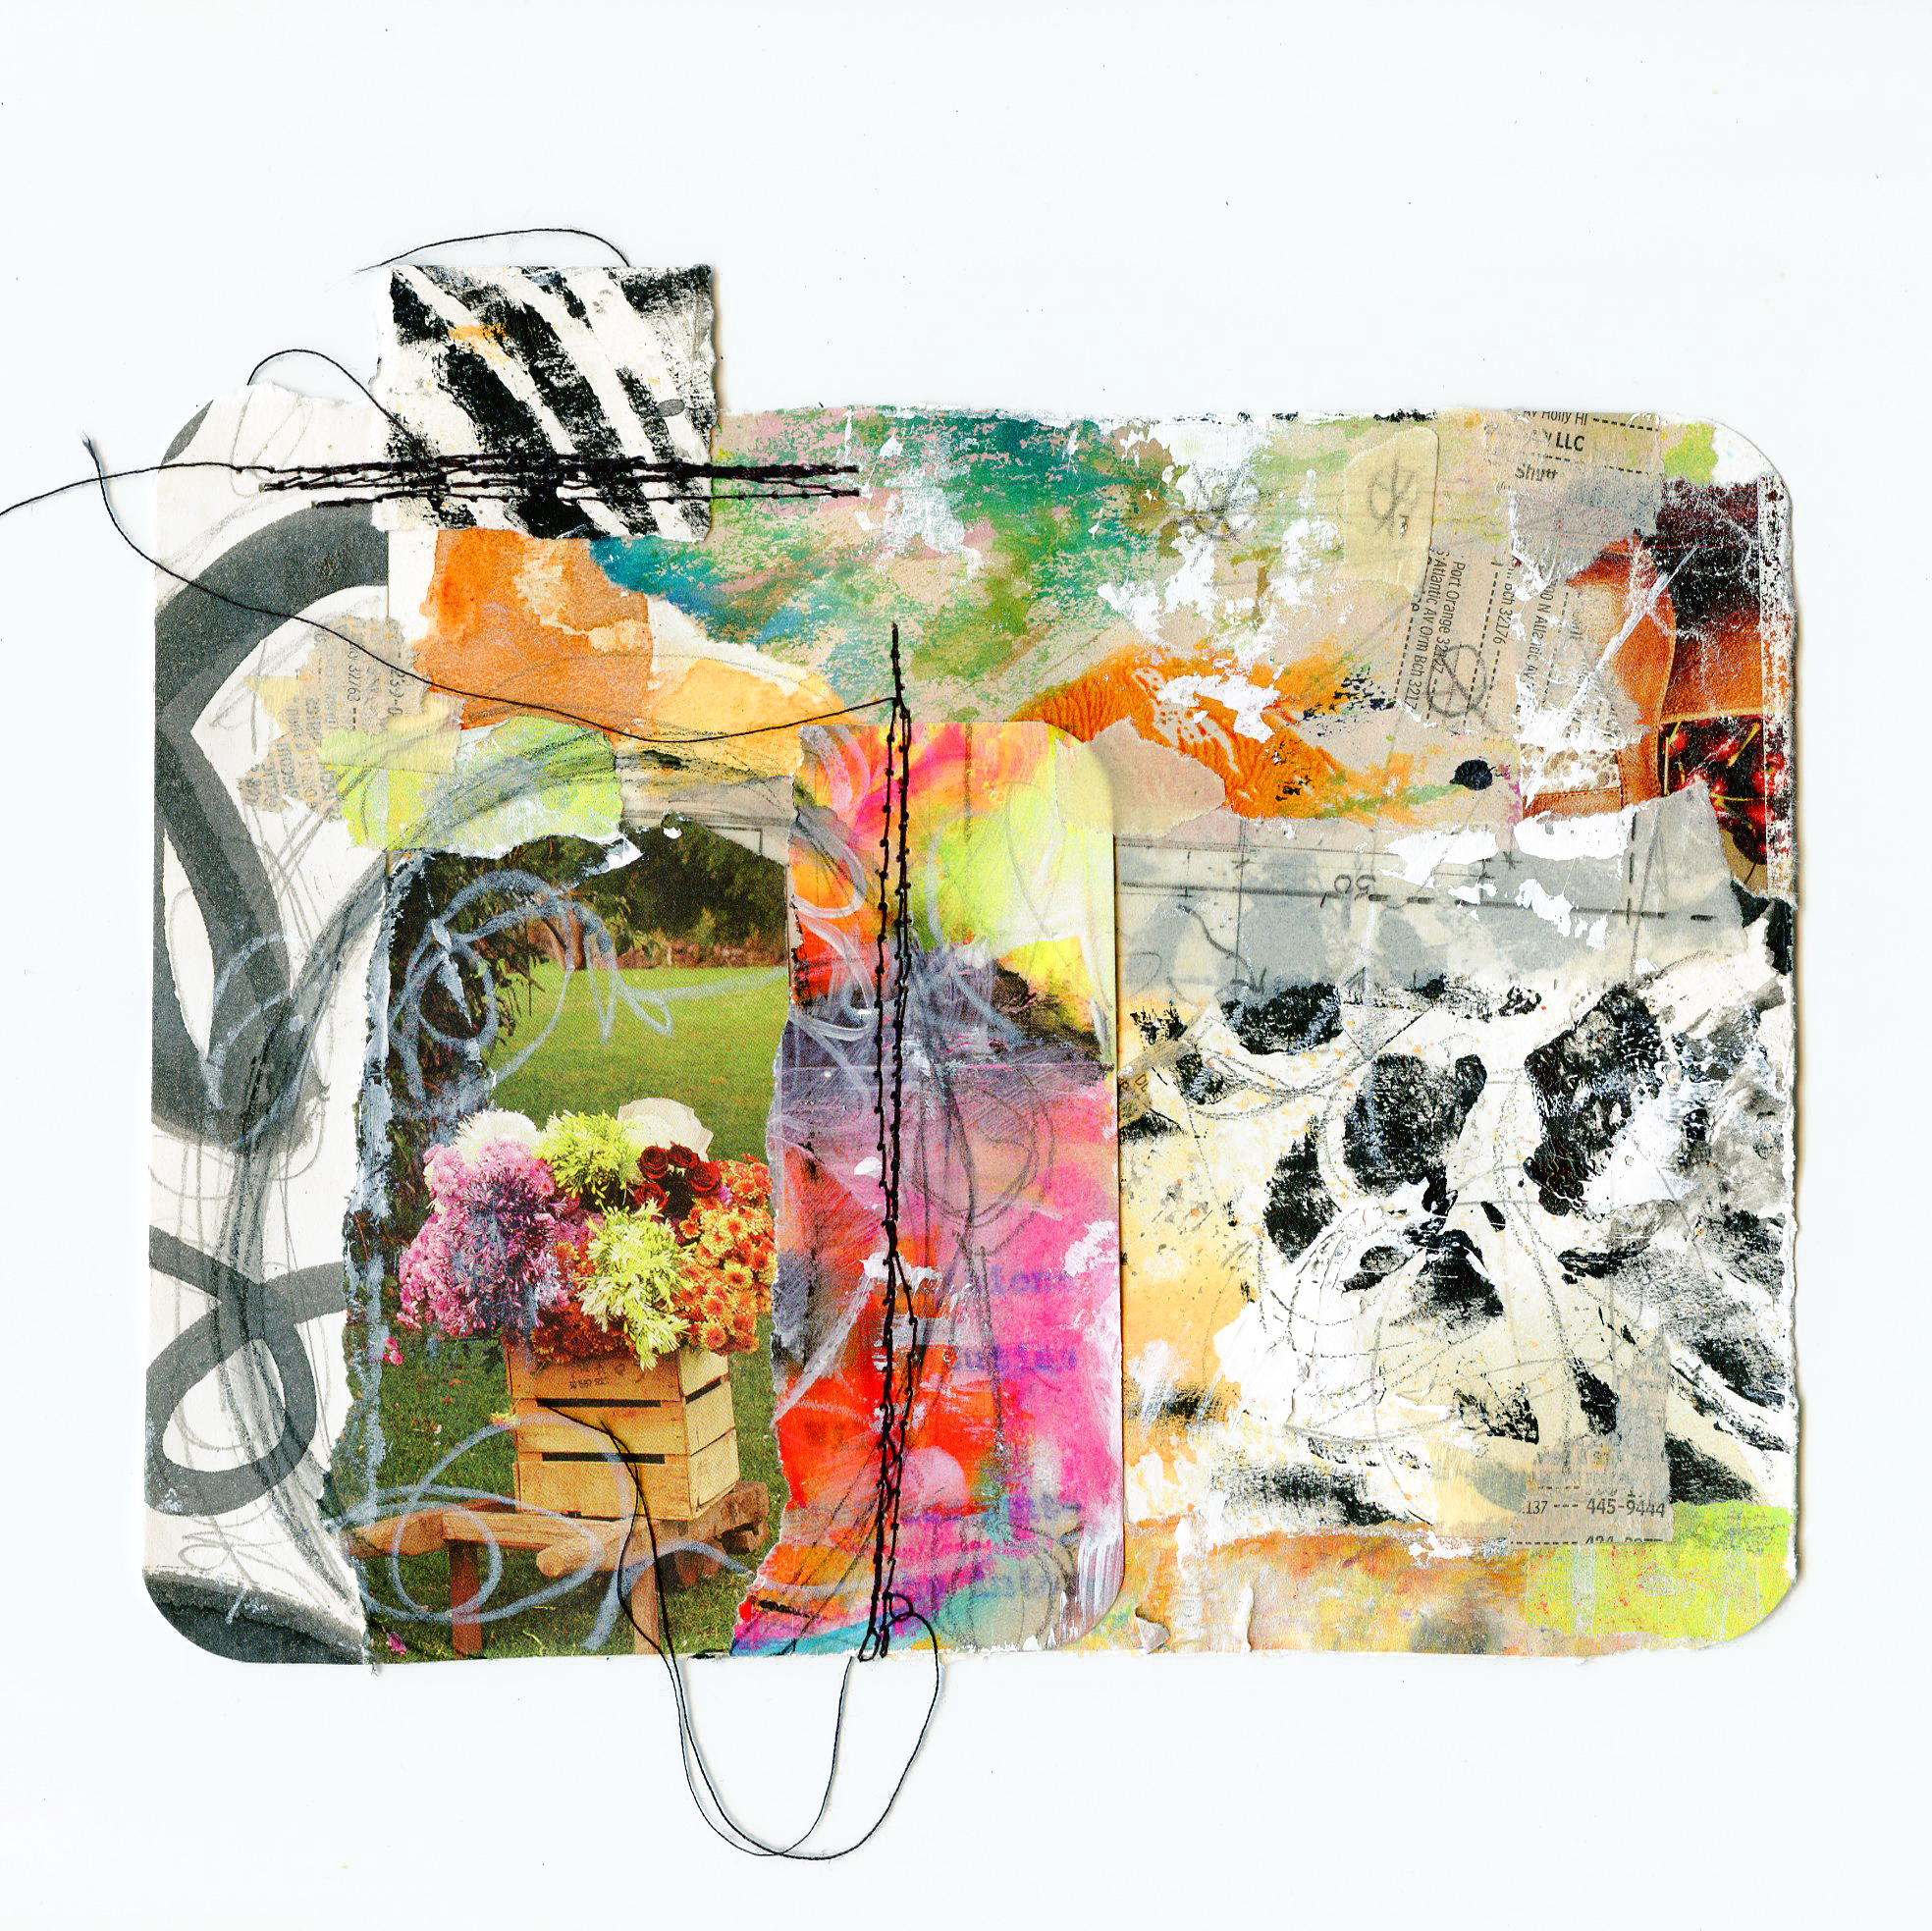 @robenmarie #the100dayproject and #100daysofanthropologiestories where I will take something from an Anthropologie catalog, create a mixed media piece around it and write a little story to go with it.@anthropologie Follow @robenmarie on Instagram for art and stories each day.